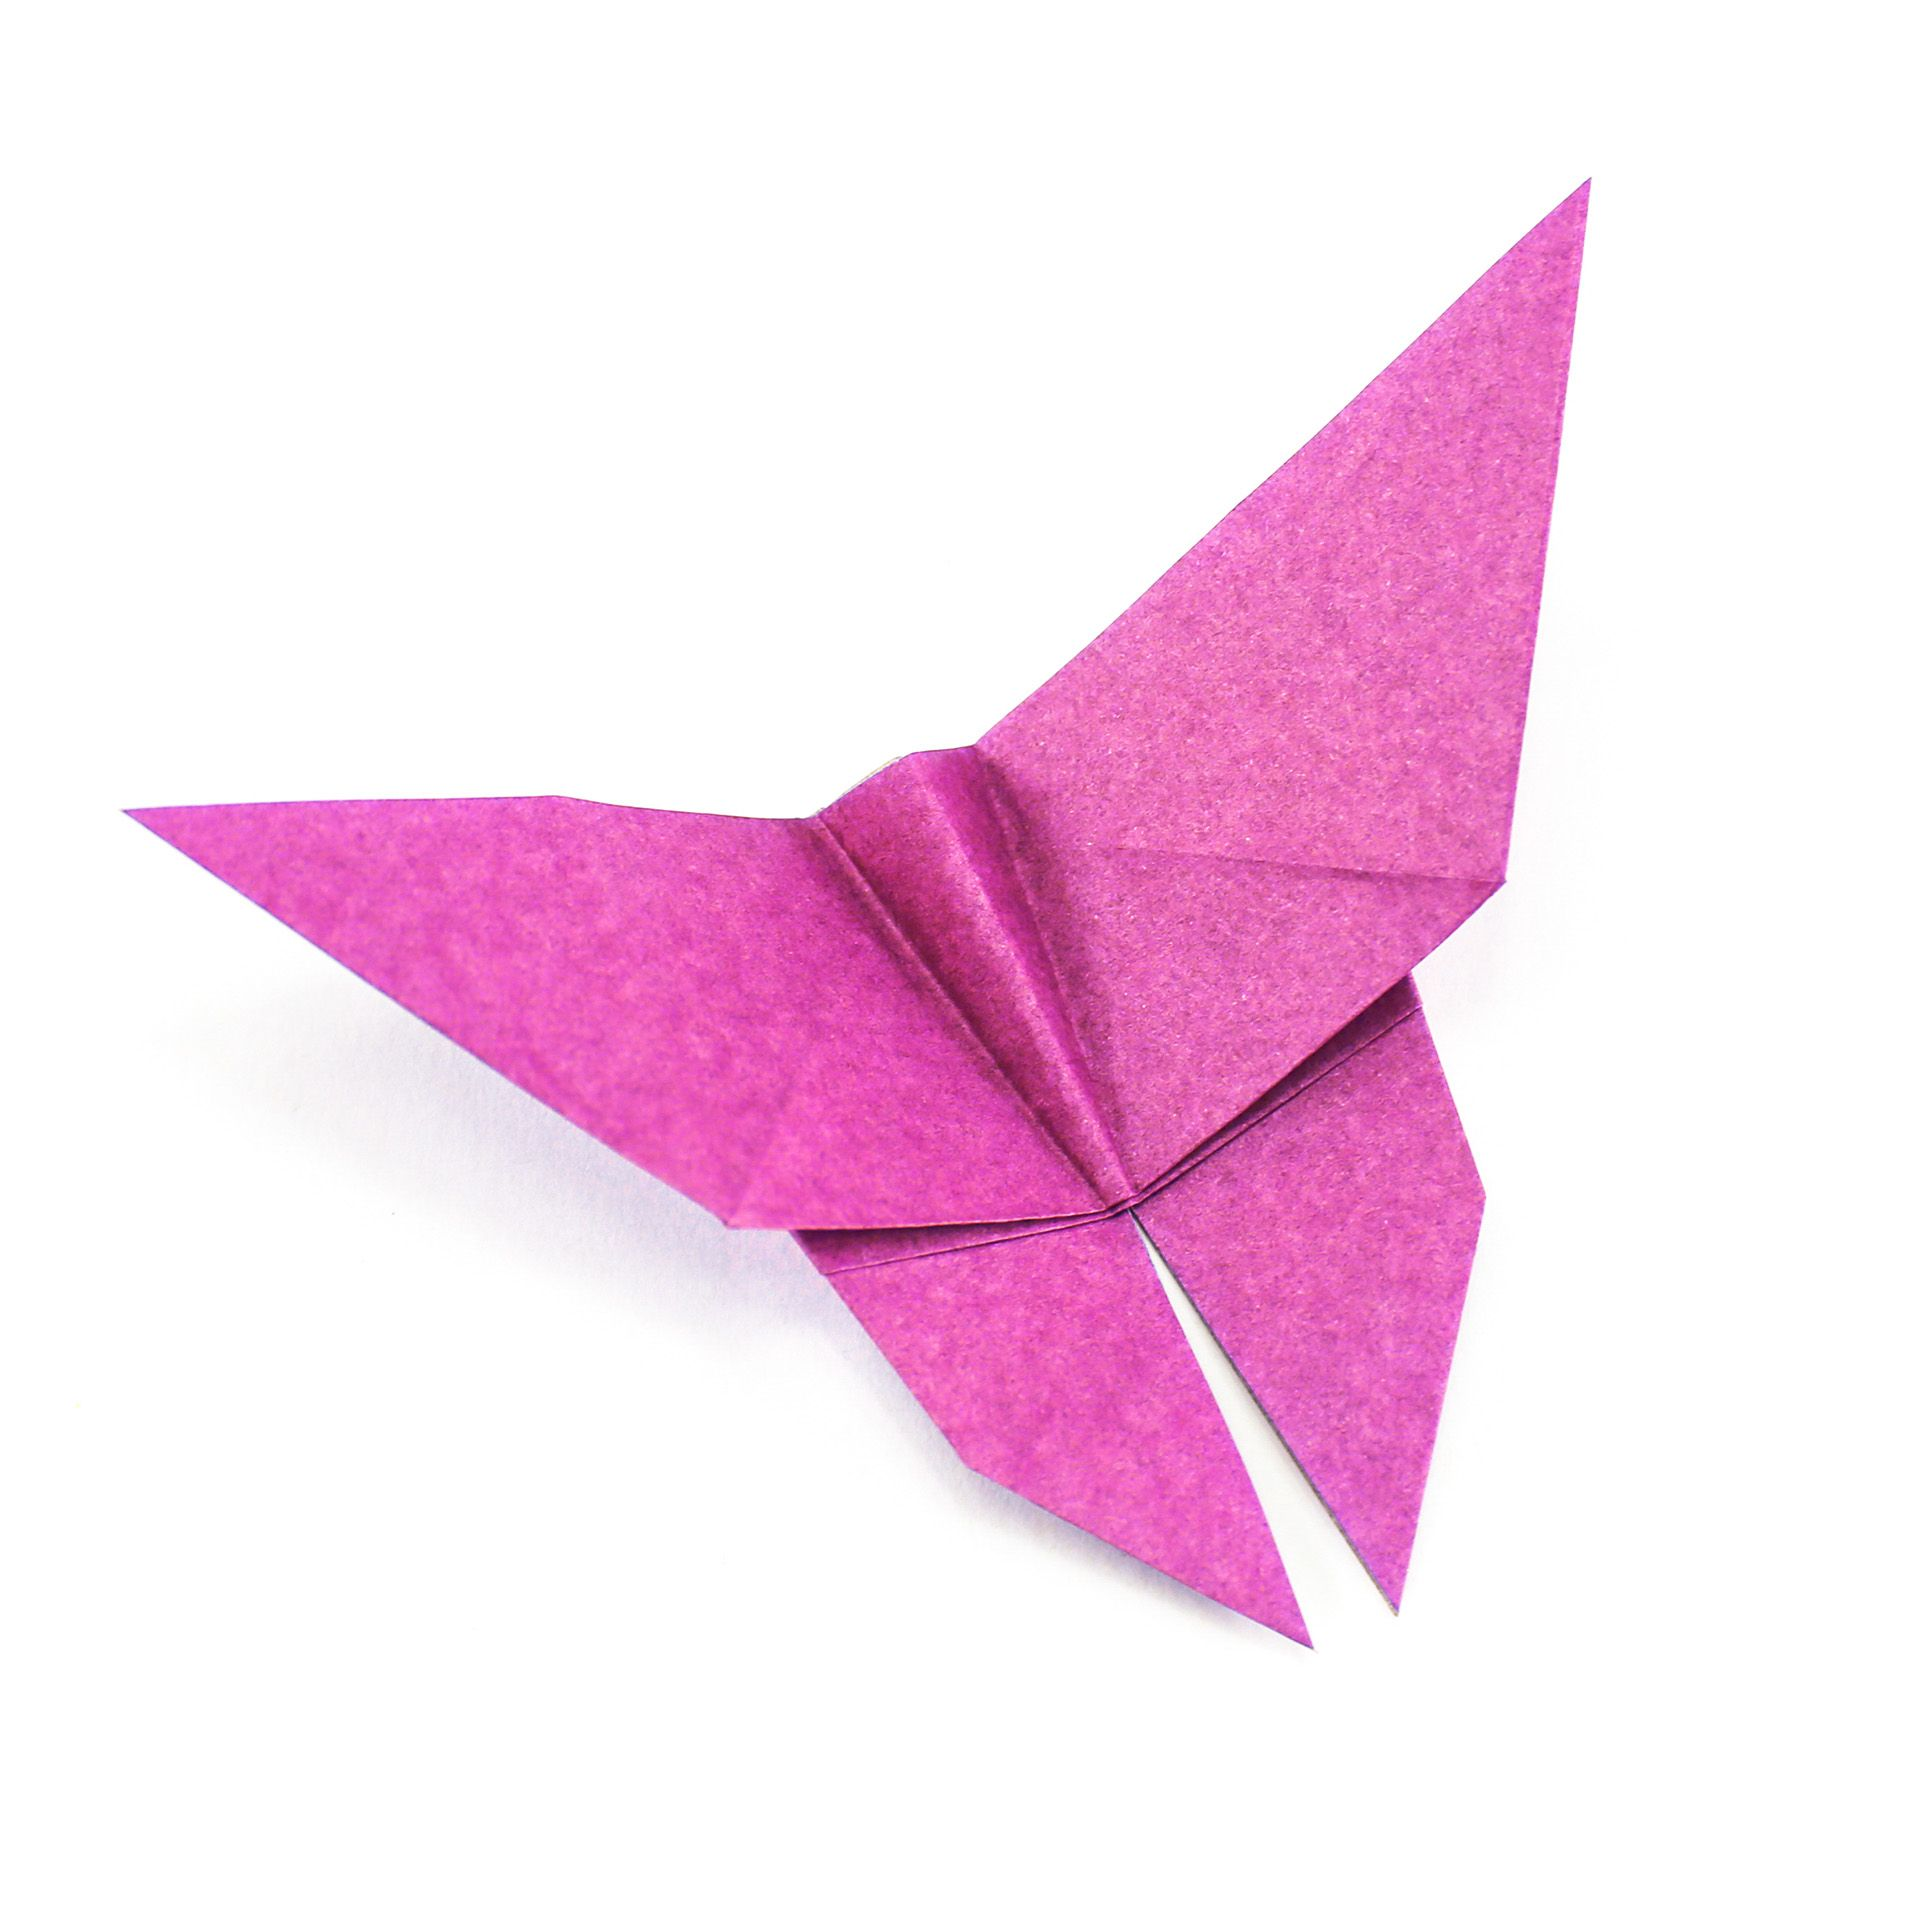 Pin on Origami Instructions Origami Guide